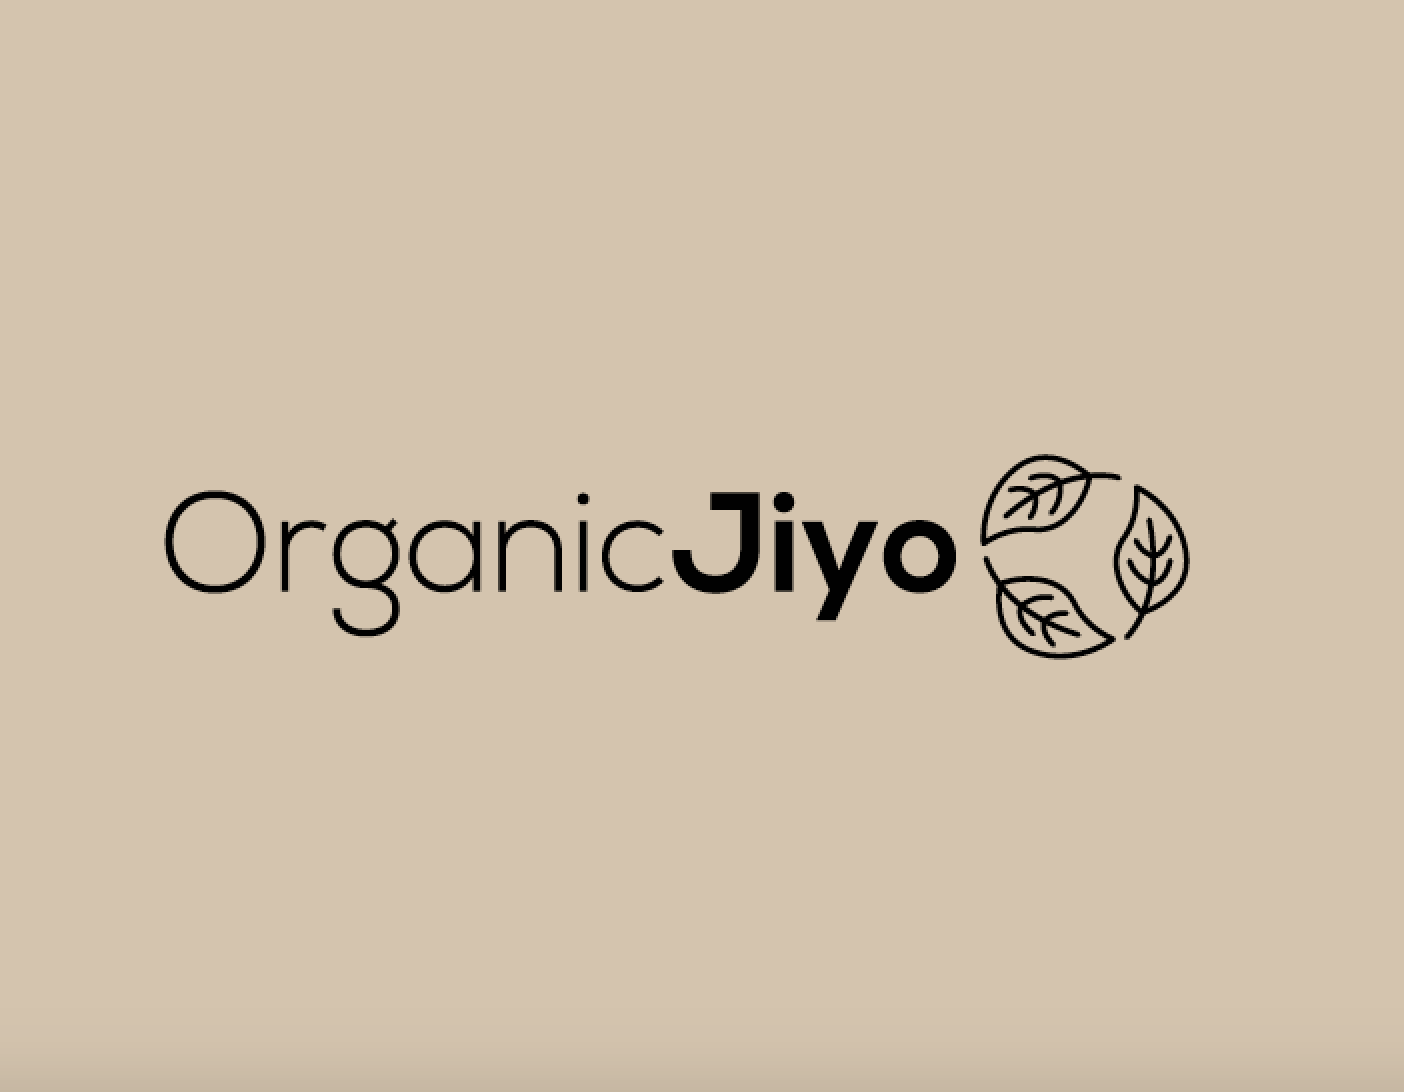 Organic Jiyo logo screenshot